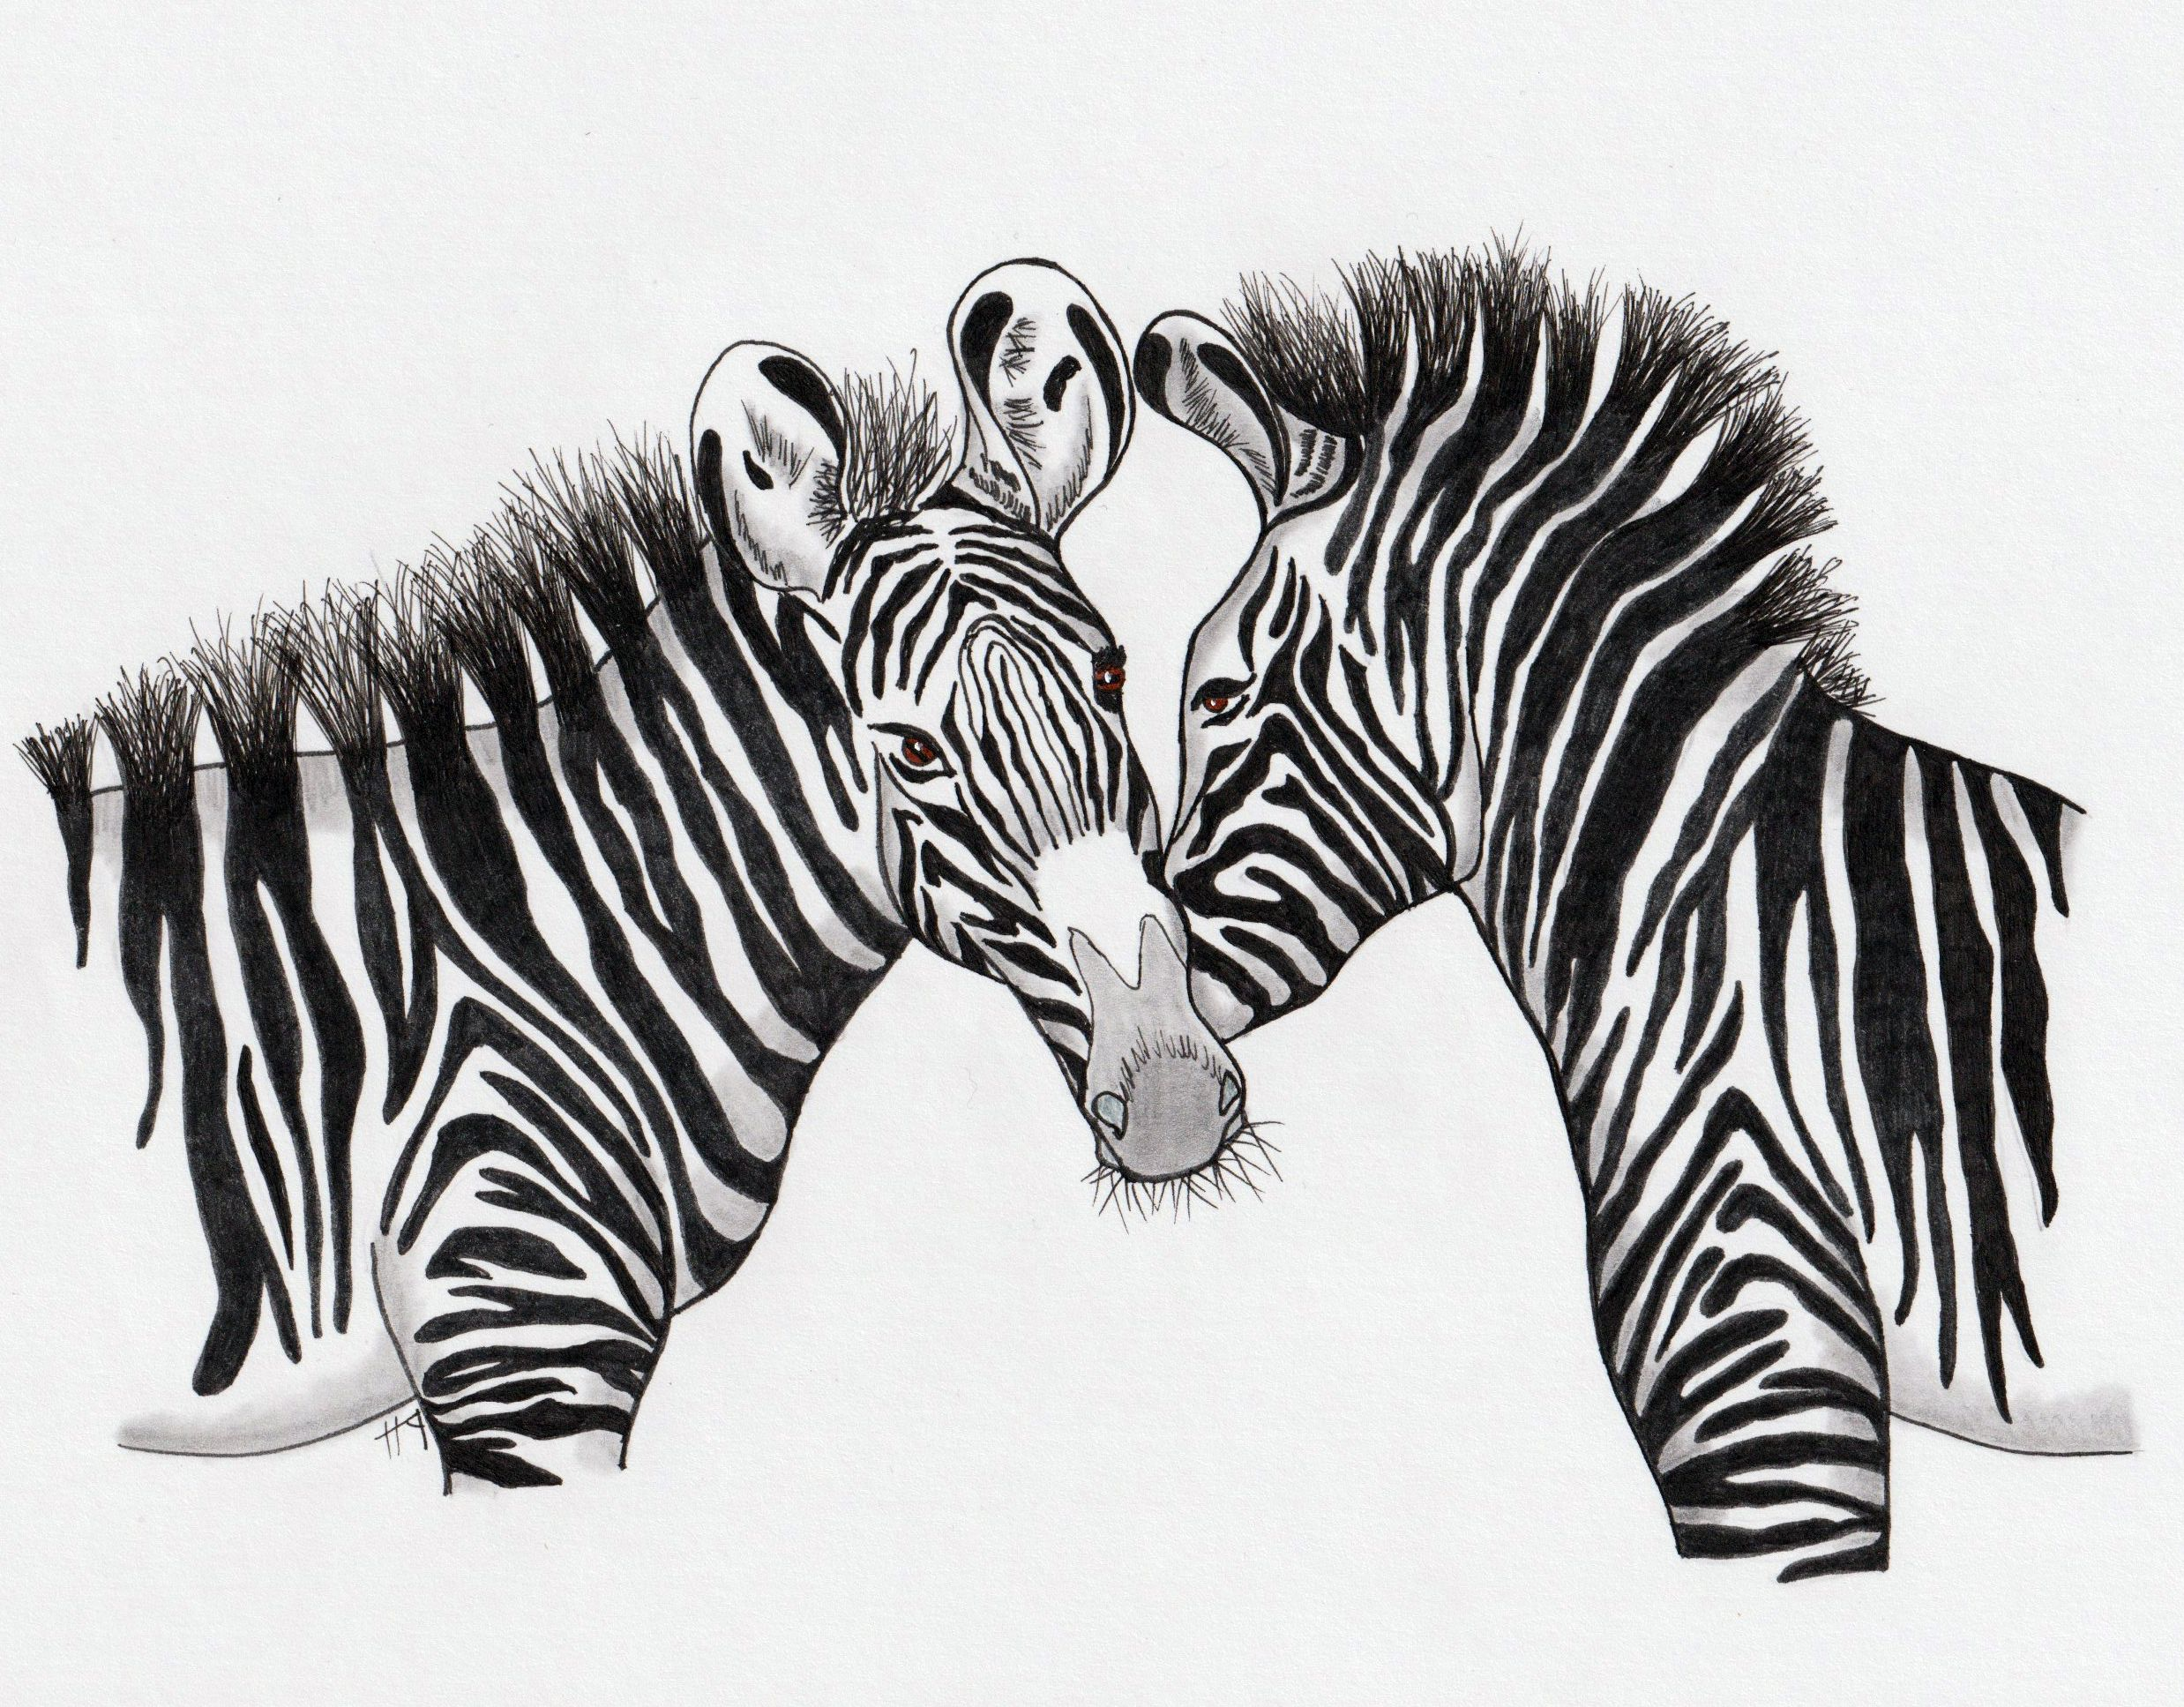 Zebra Pencil Drawing Images In 2020 Drawing Images Pencil Drawing Images Pencil Drawings